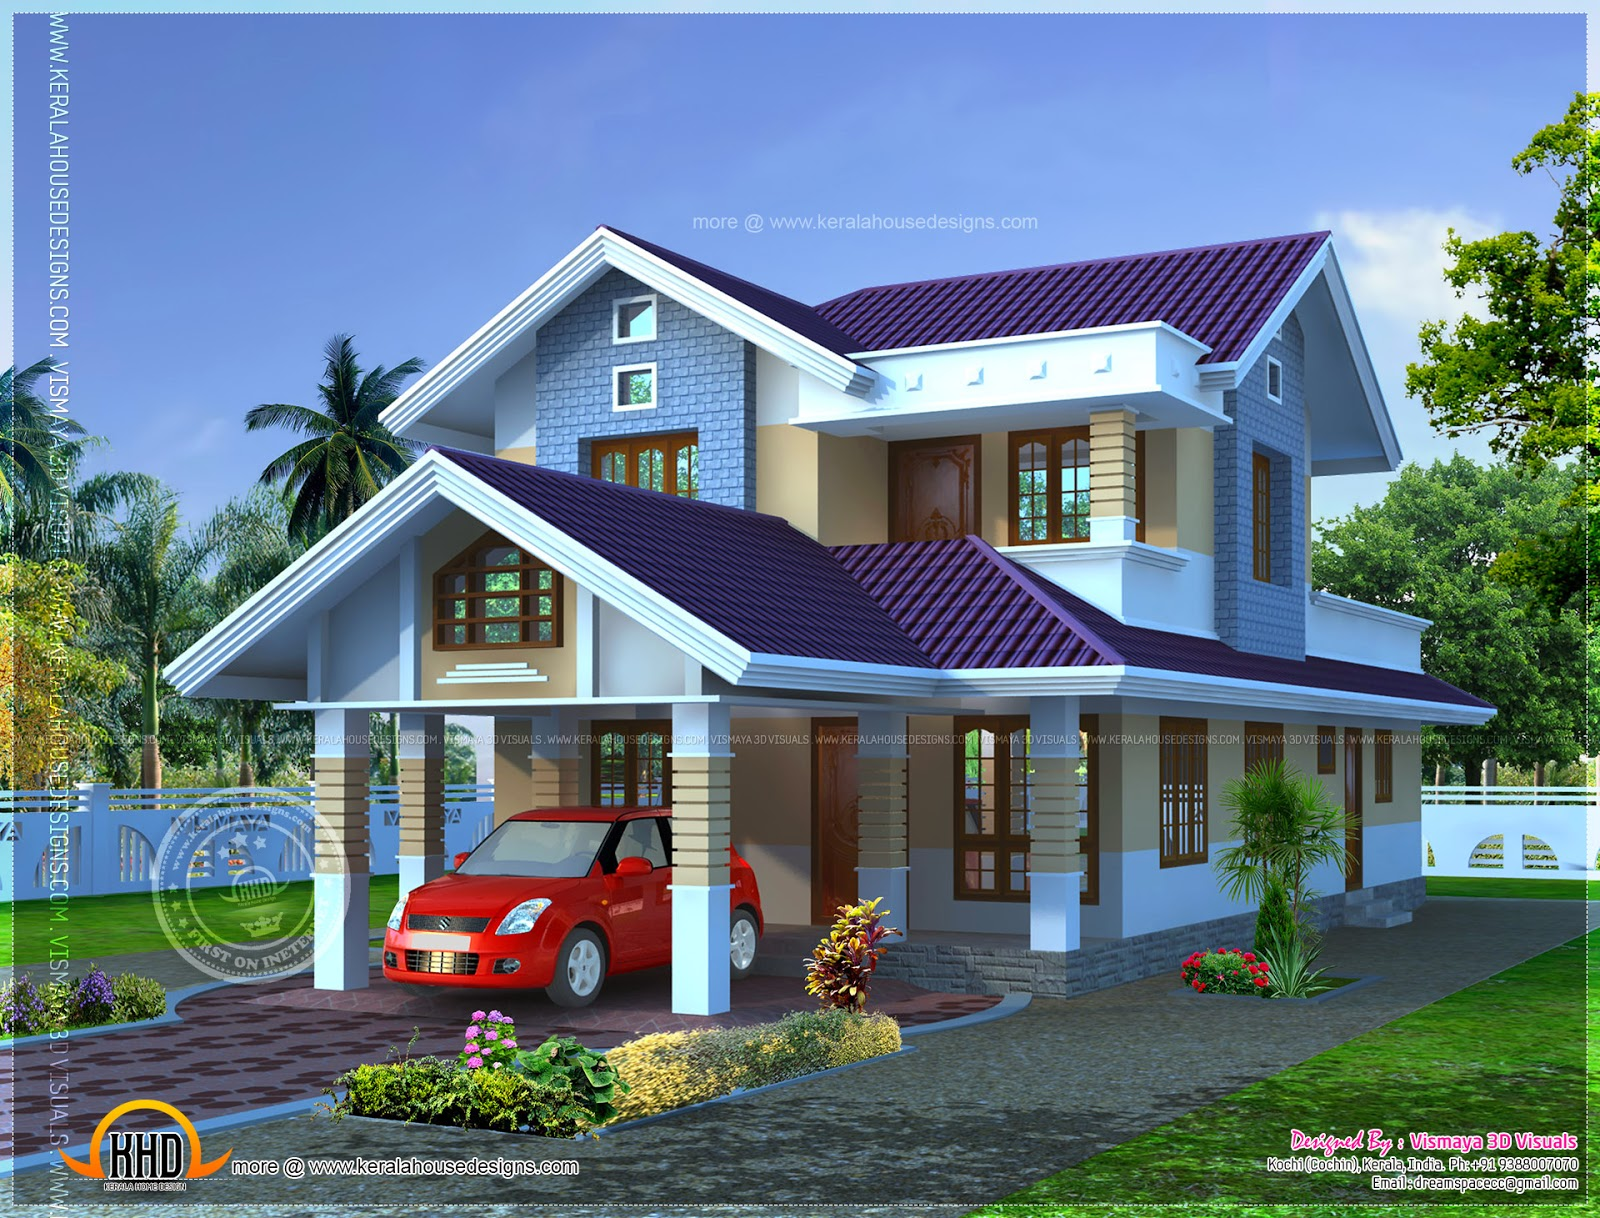 Narrow lot house plan kerala home design and floor plans for 4 story beach house plans